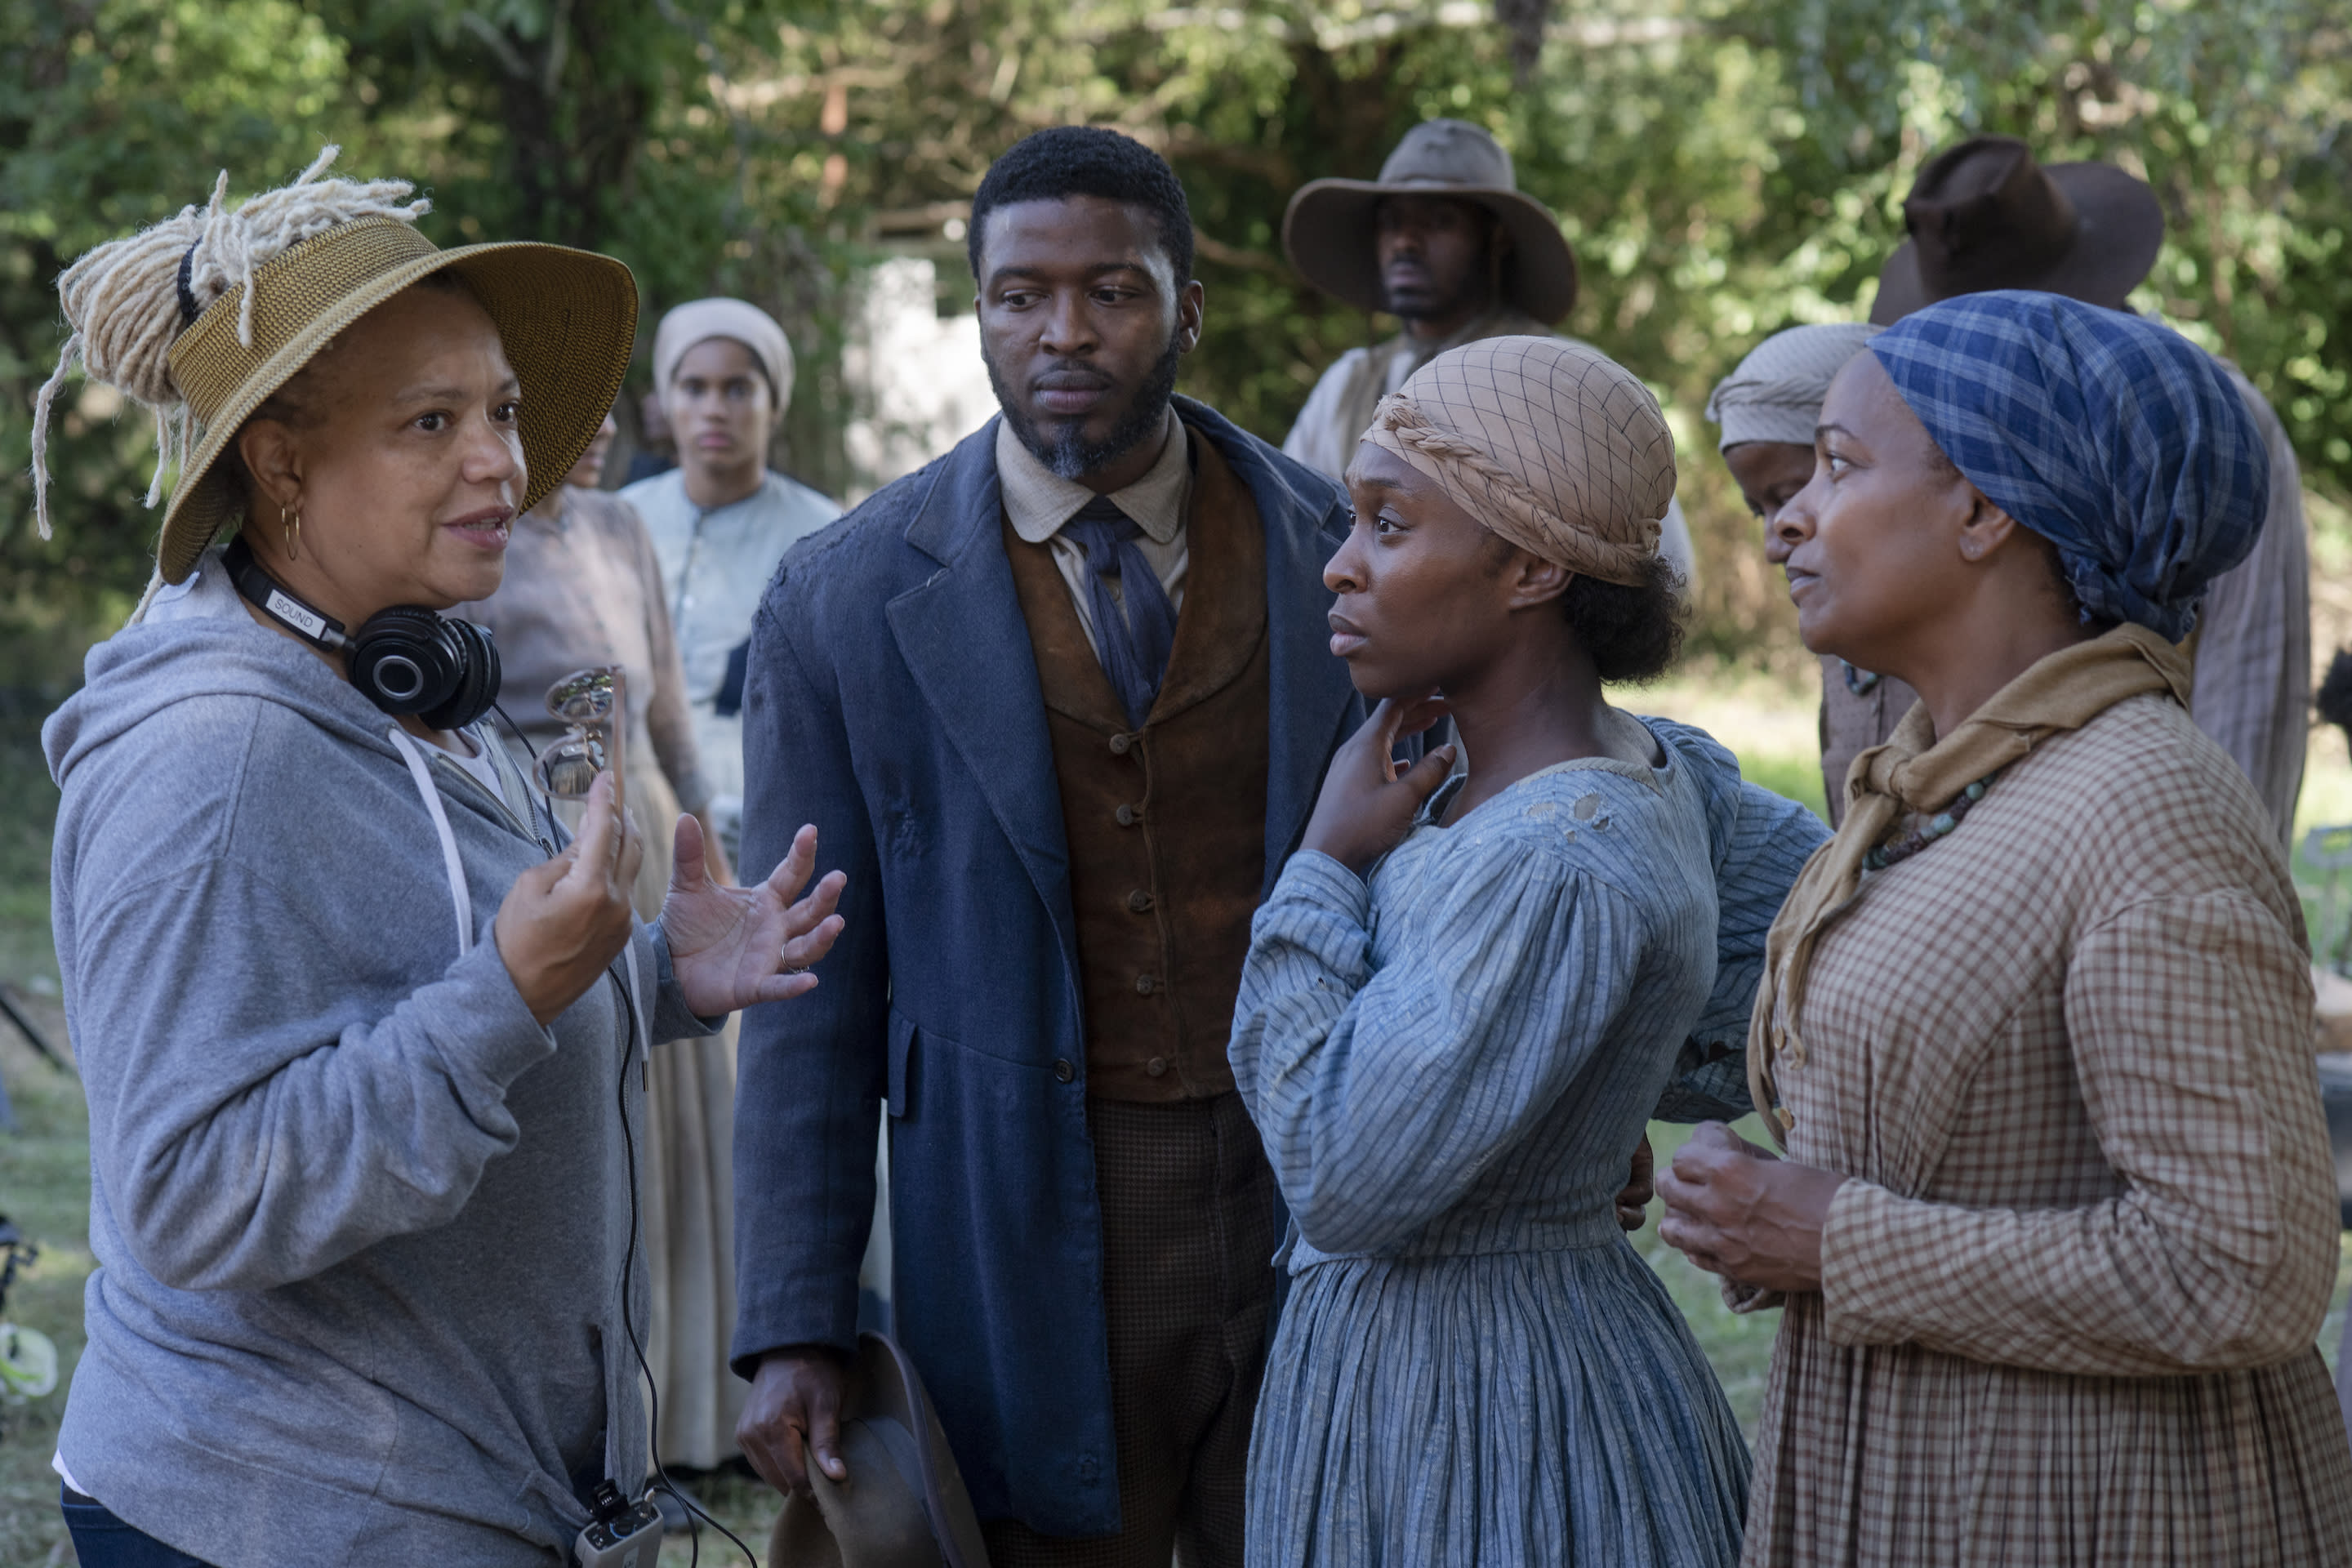 Director Kasi Lemmons with actors Zackary Momoh, Cynthia Erivo and Vanessa Bell Calloway on the set of her film HARRIET, a Focus Features release. Credit: Glen Wilson / Focus Features